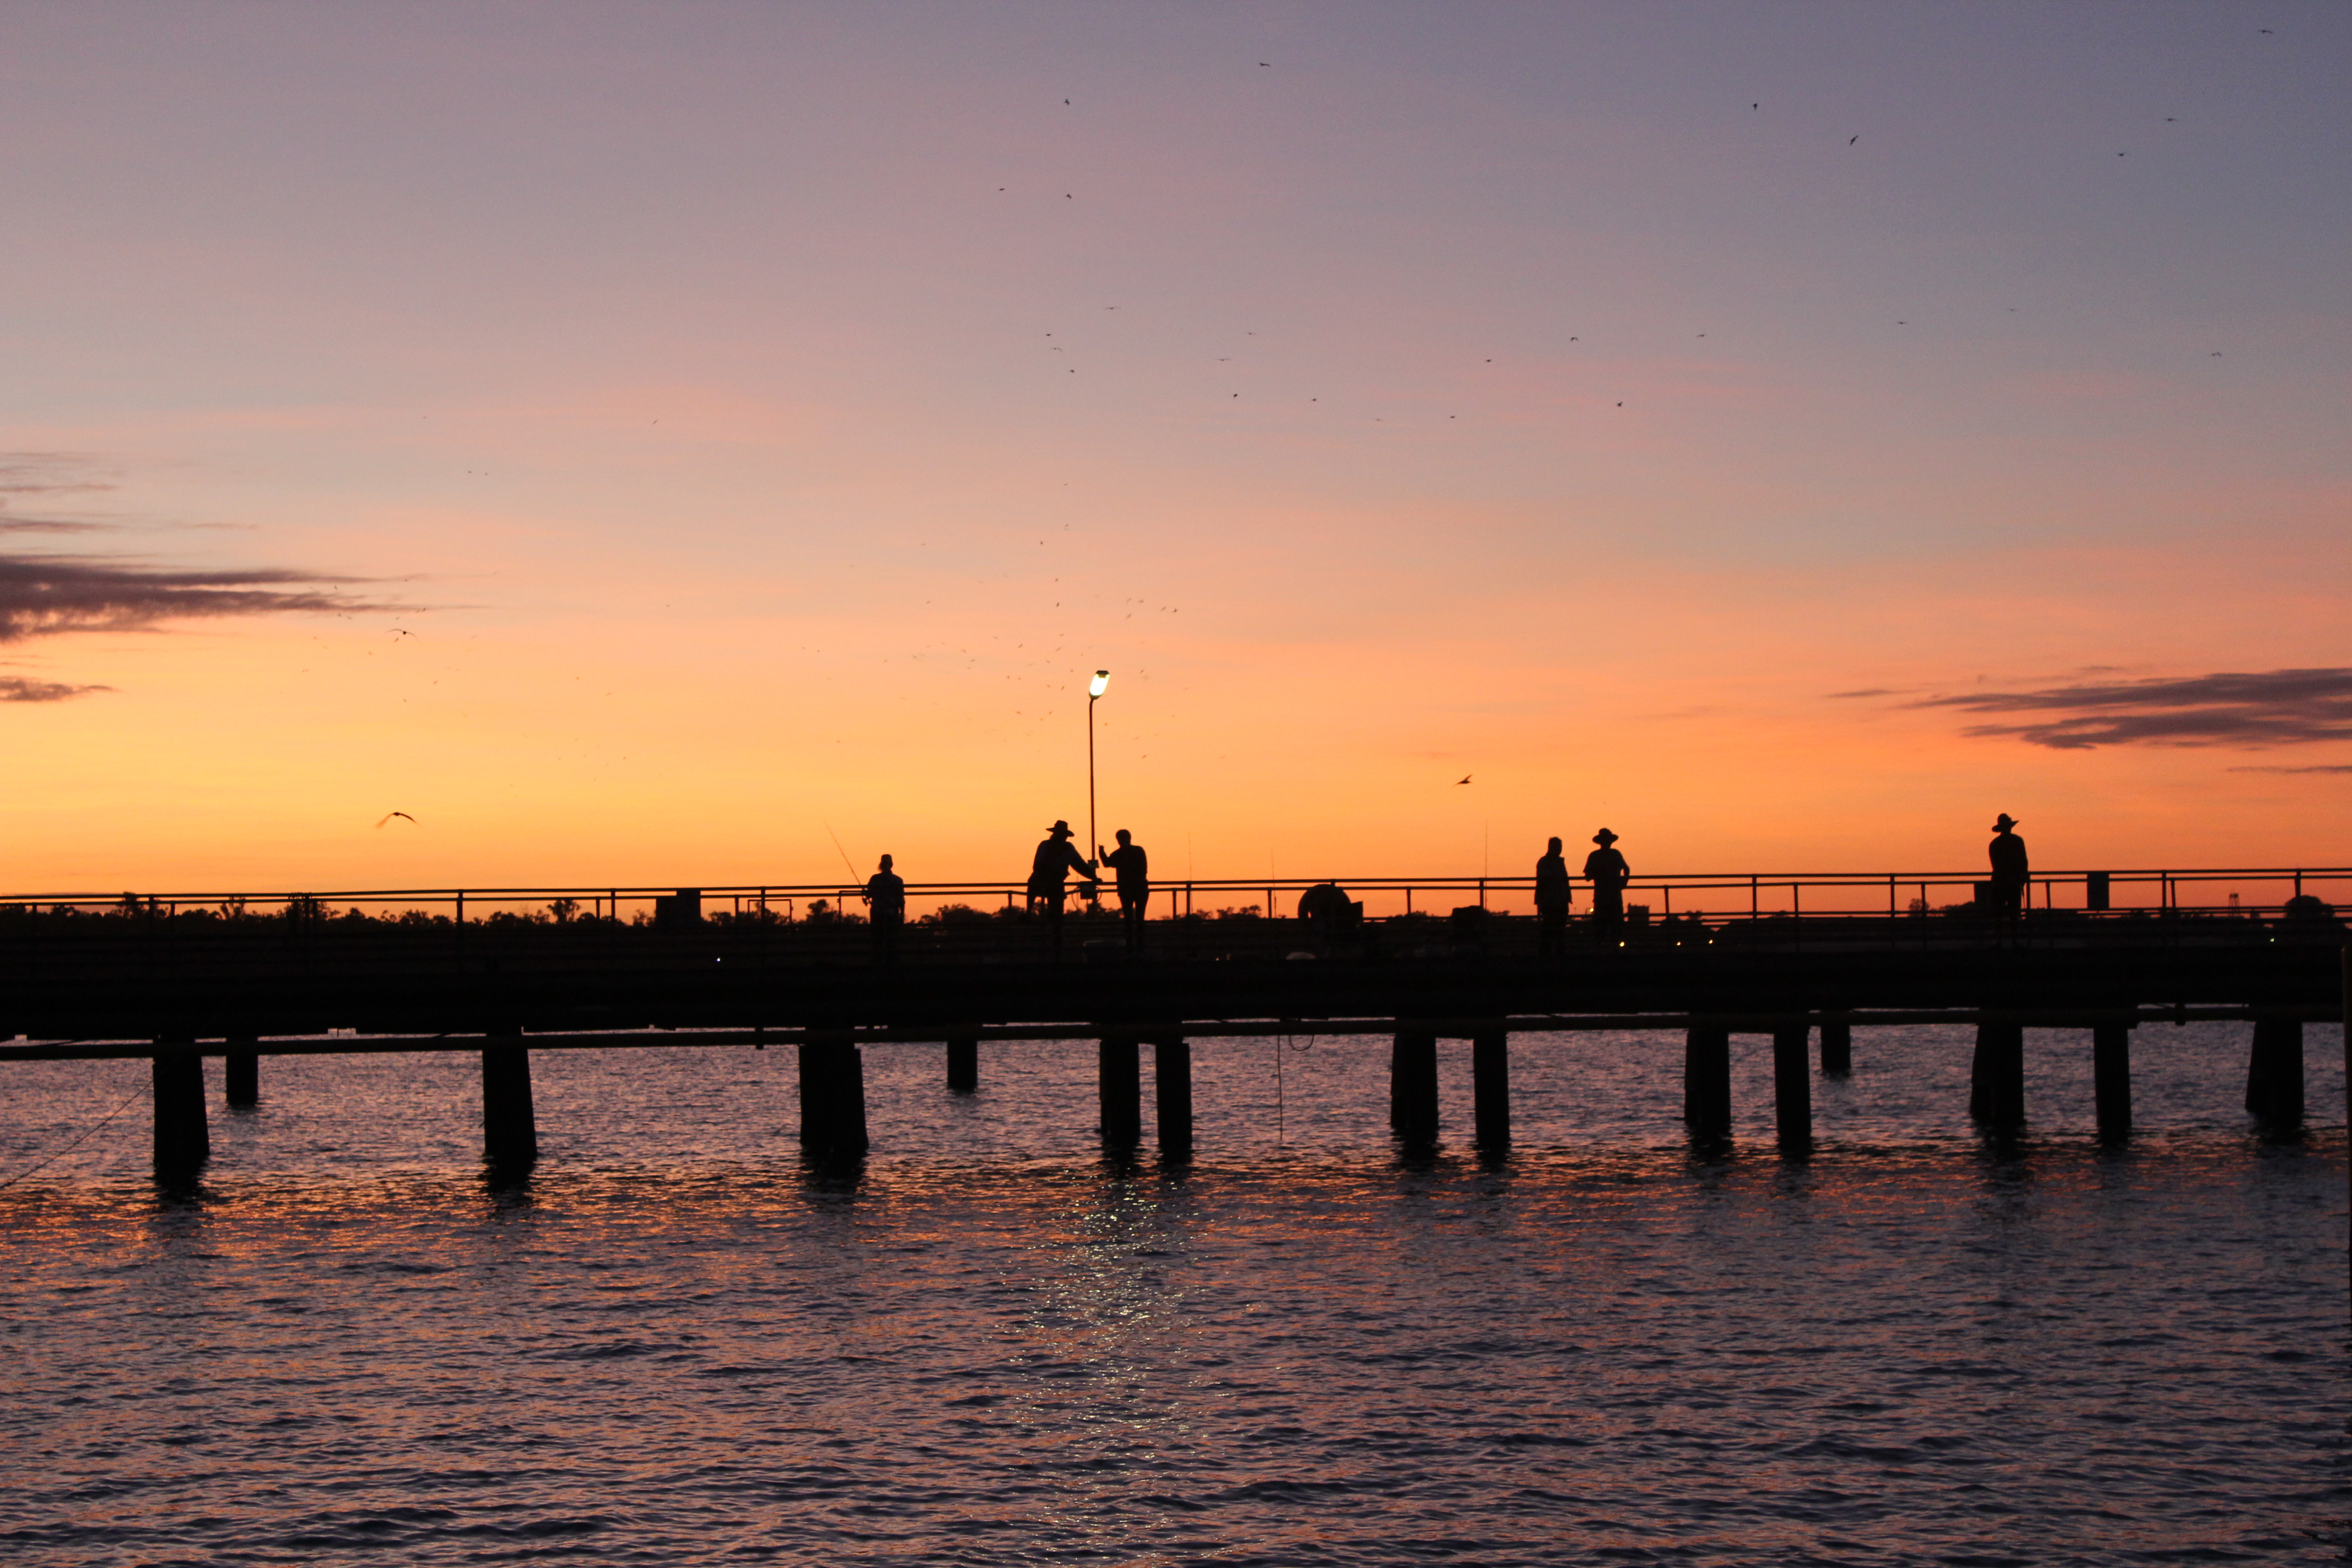 Jetty - Weipa, North Queensland, Australia